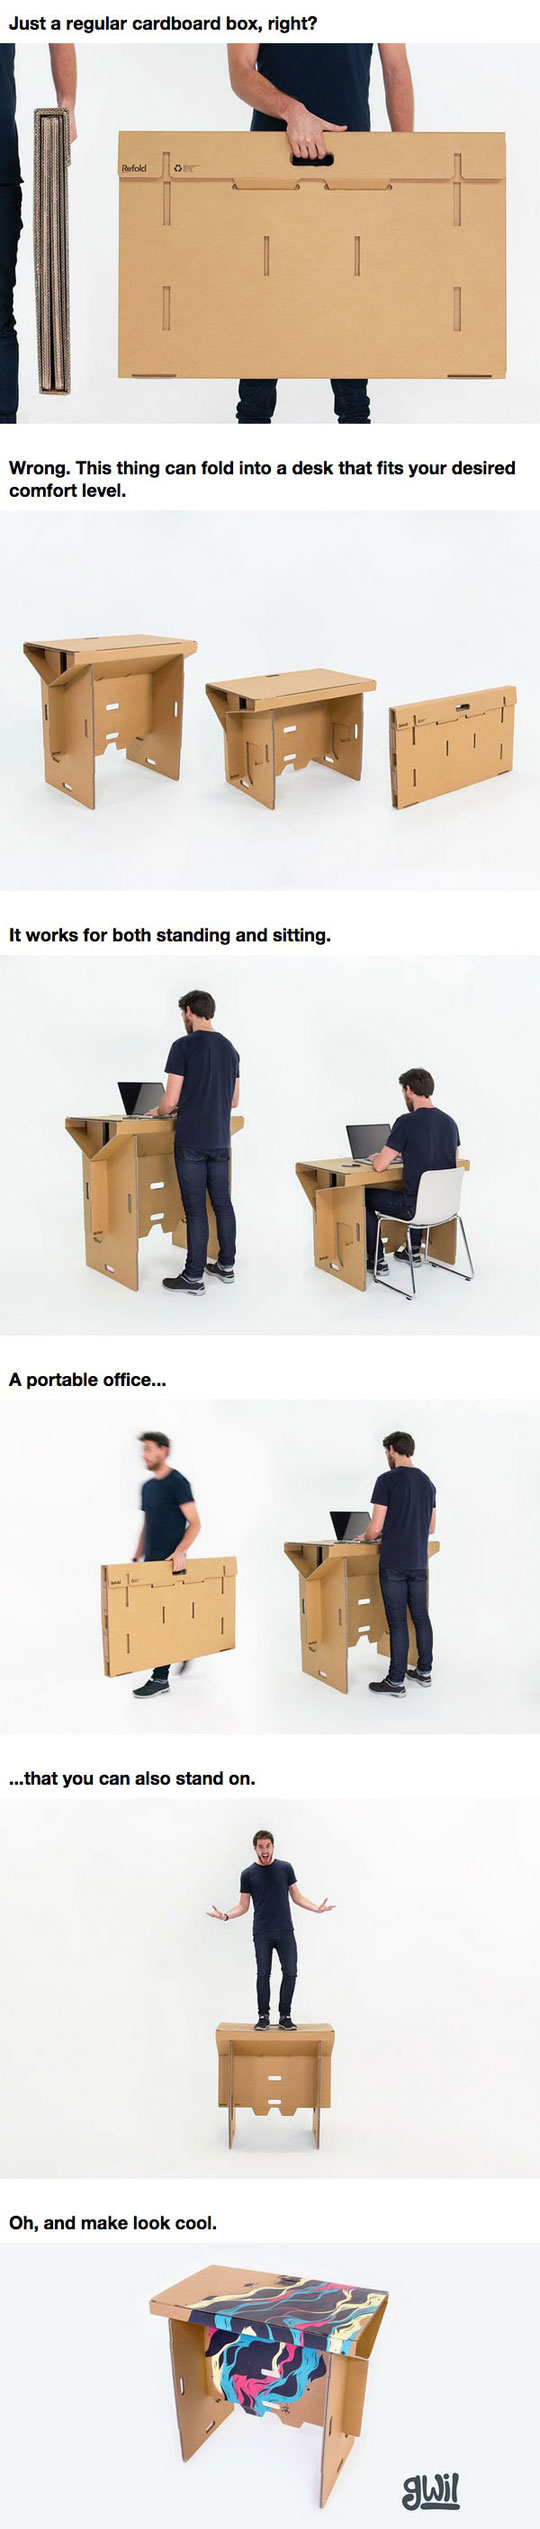 cool-cardboard-box-desk-design